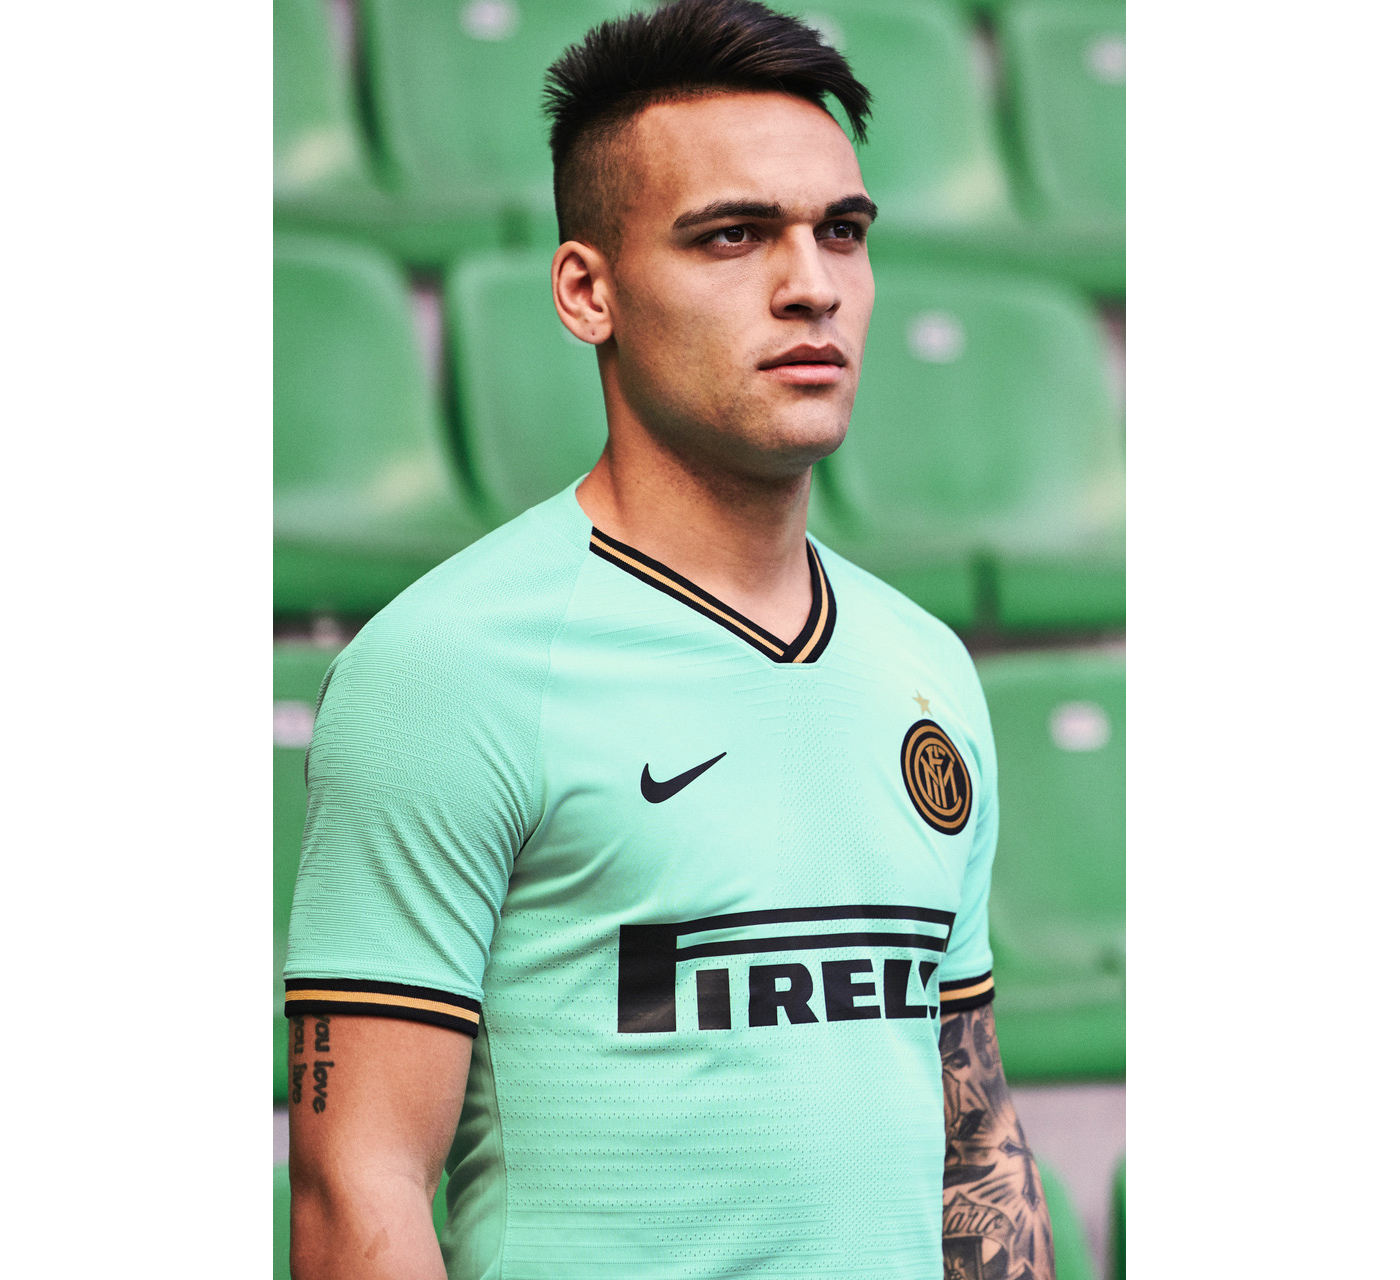 SUFA19_FB_CKC_INTERMILAN _AWAY_LAUTARO_MARTINEZ_3